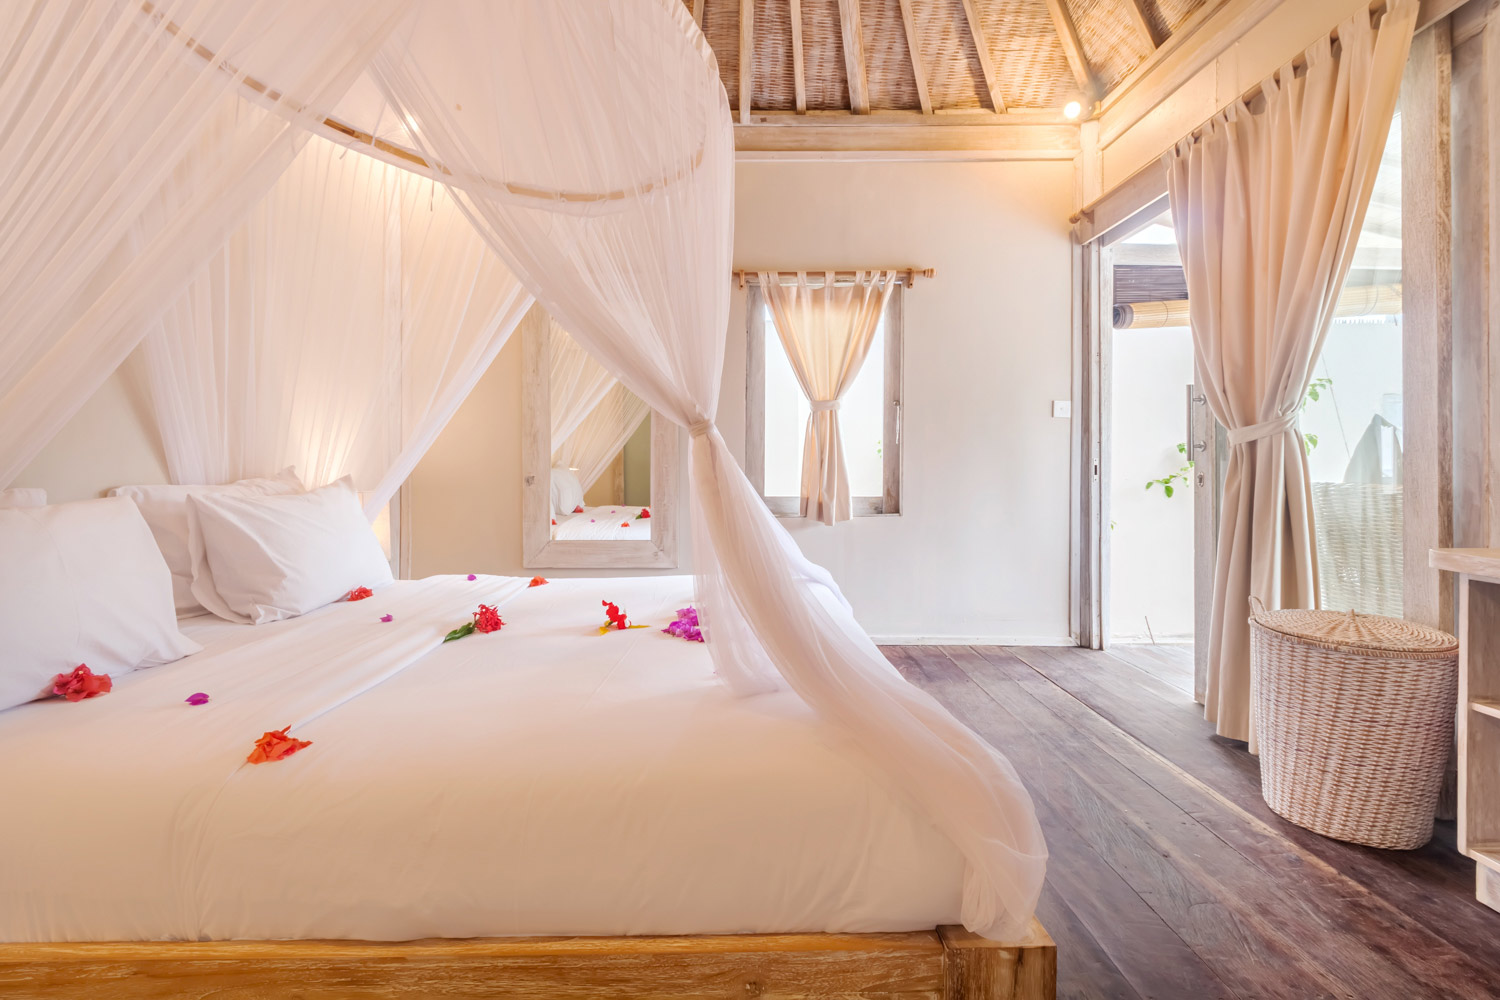 Luxury bedroom - Gili Meno - Avia Villa Resort